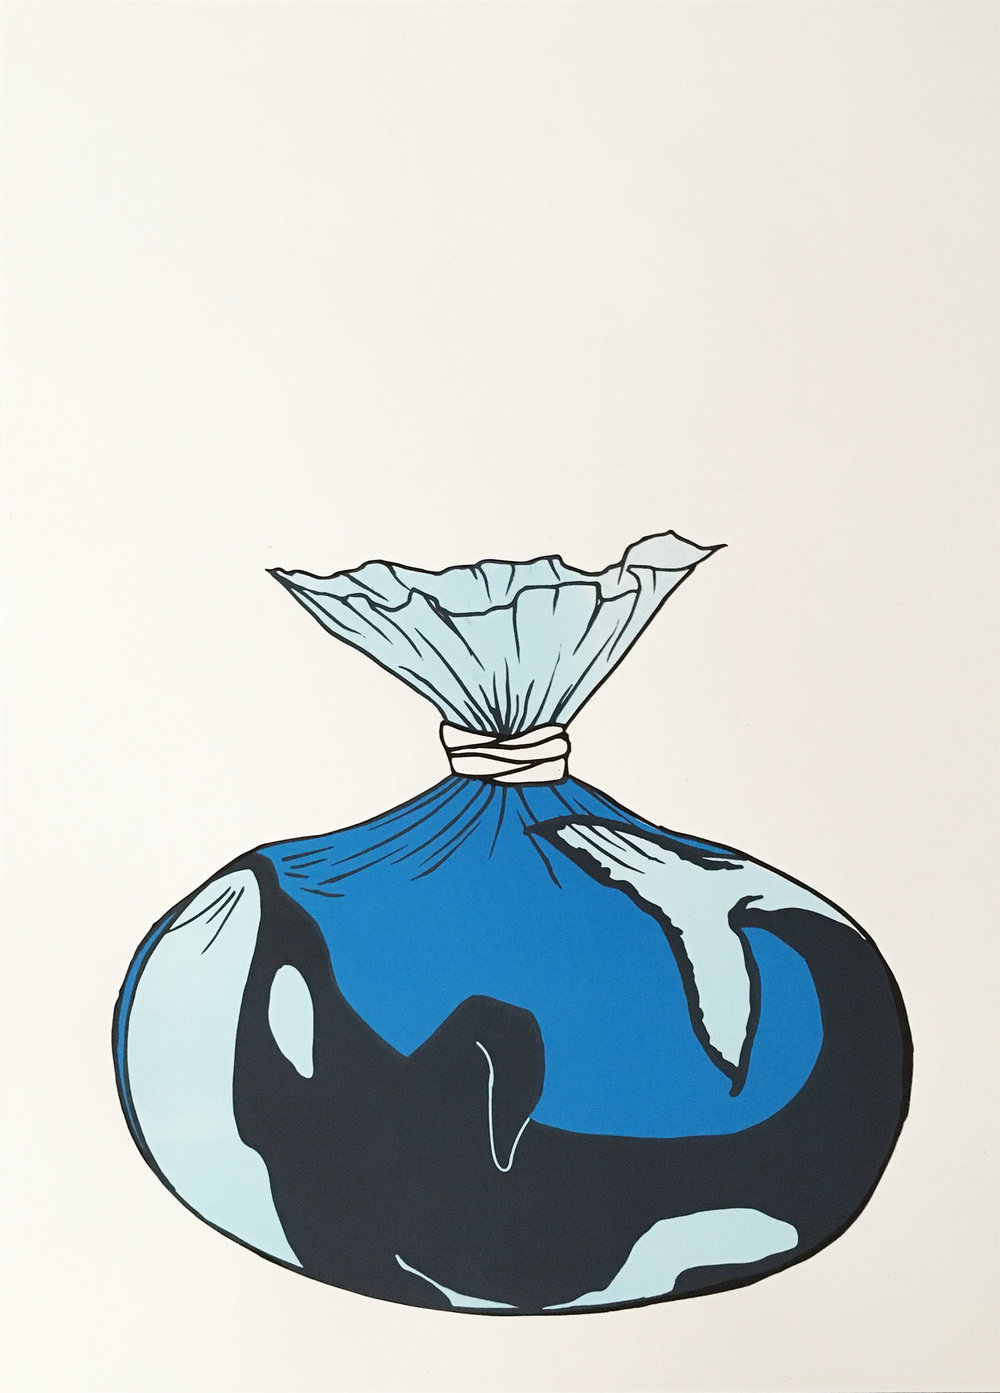 Blackfish  by Yeisy Rodriguez is a three-color screen print that depicts an orca in a plastic bag, comparing it to goldfish given as prizes at fairs.